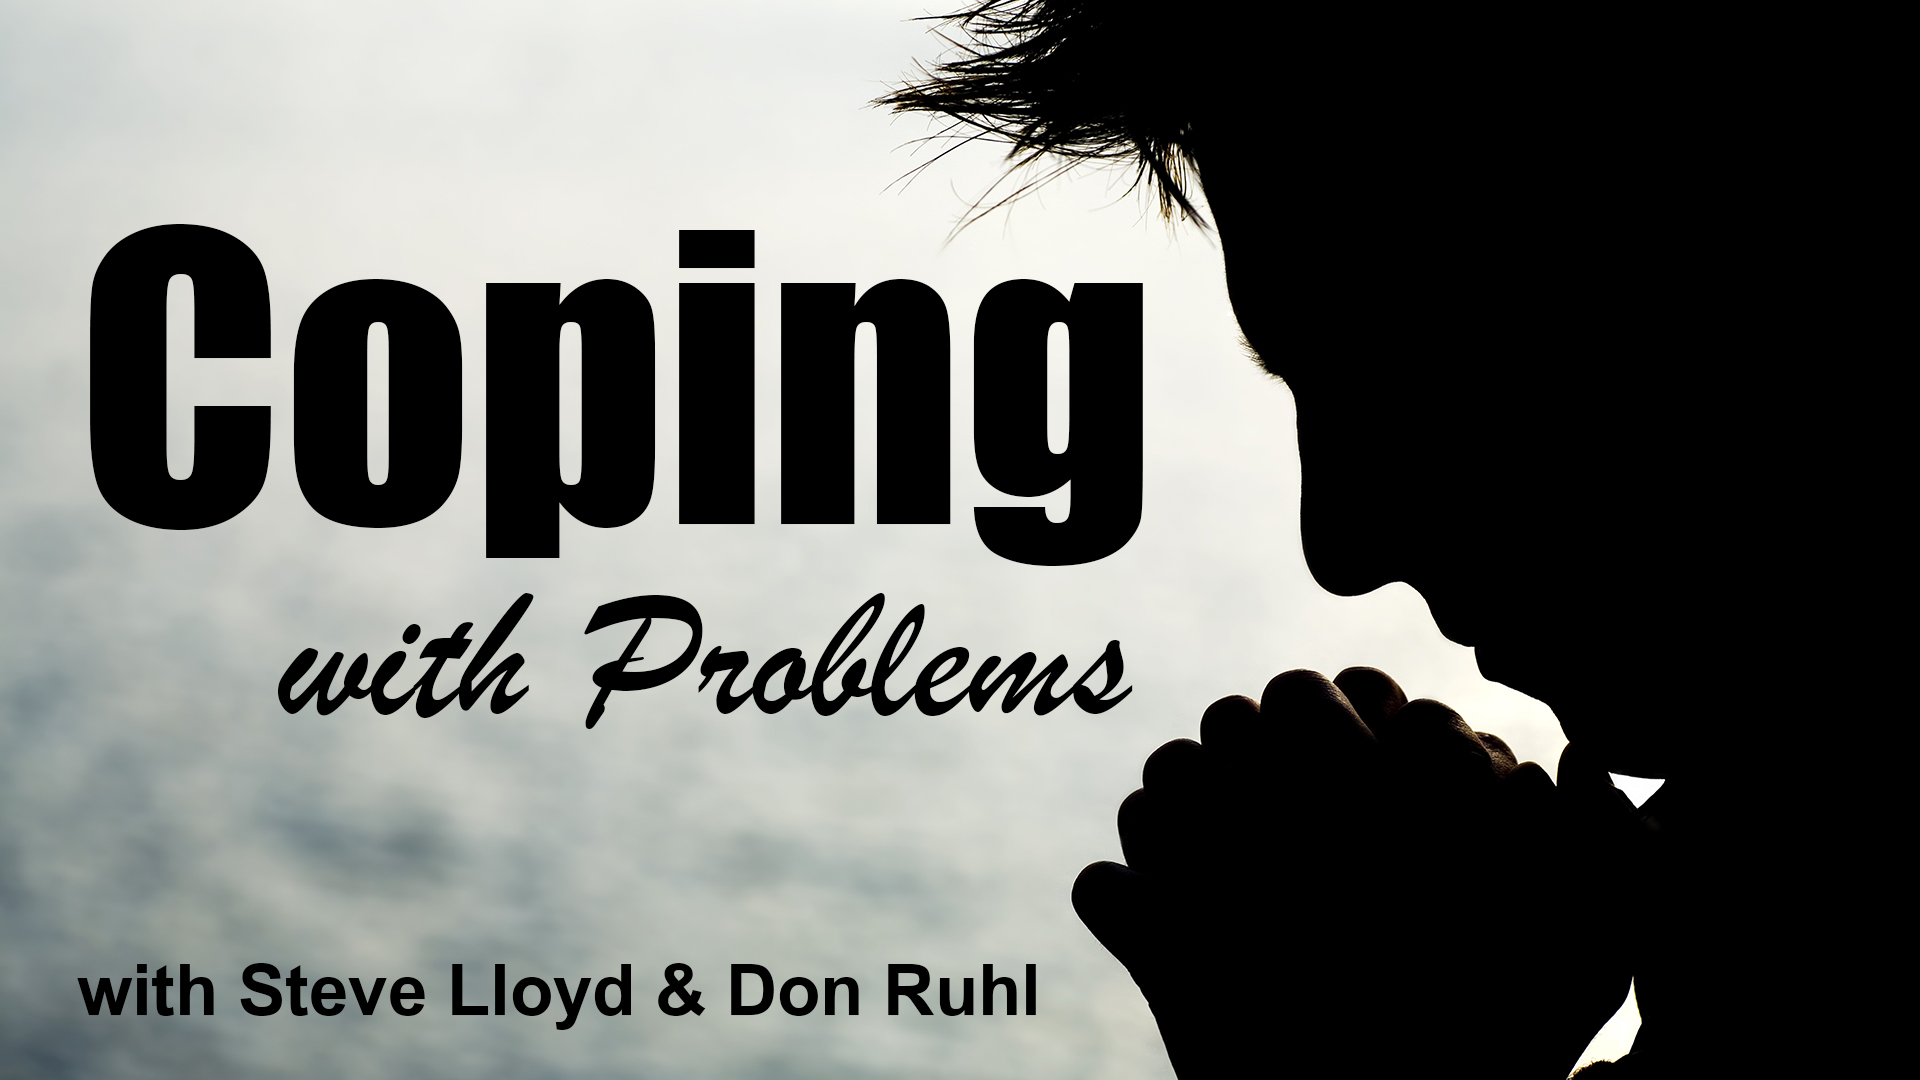 Coping with Problems